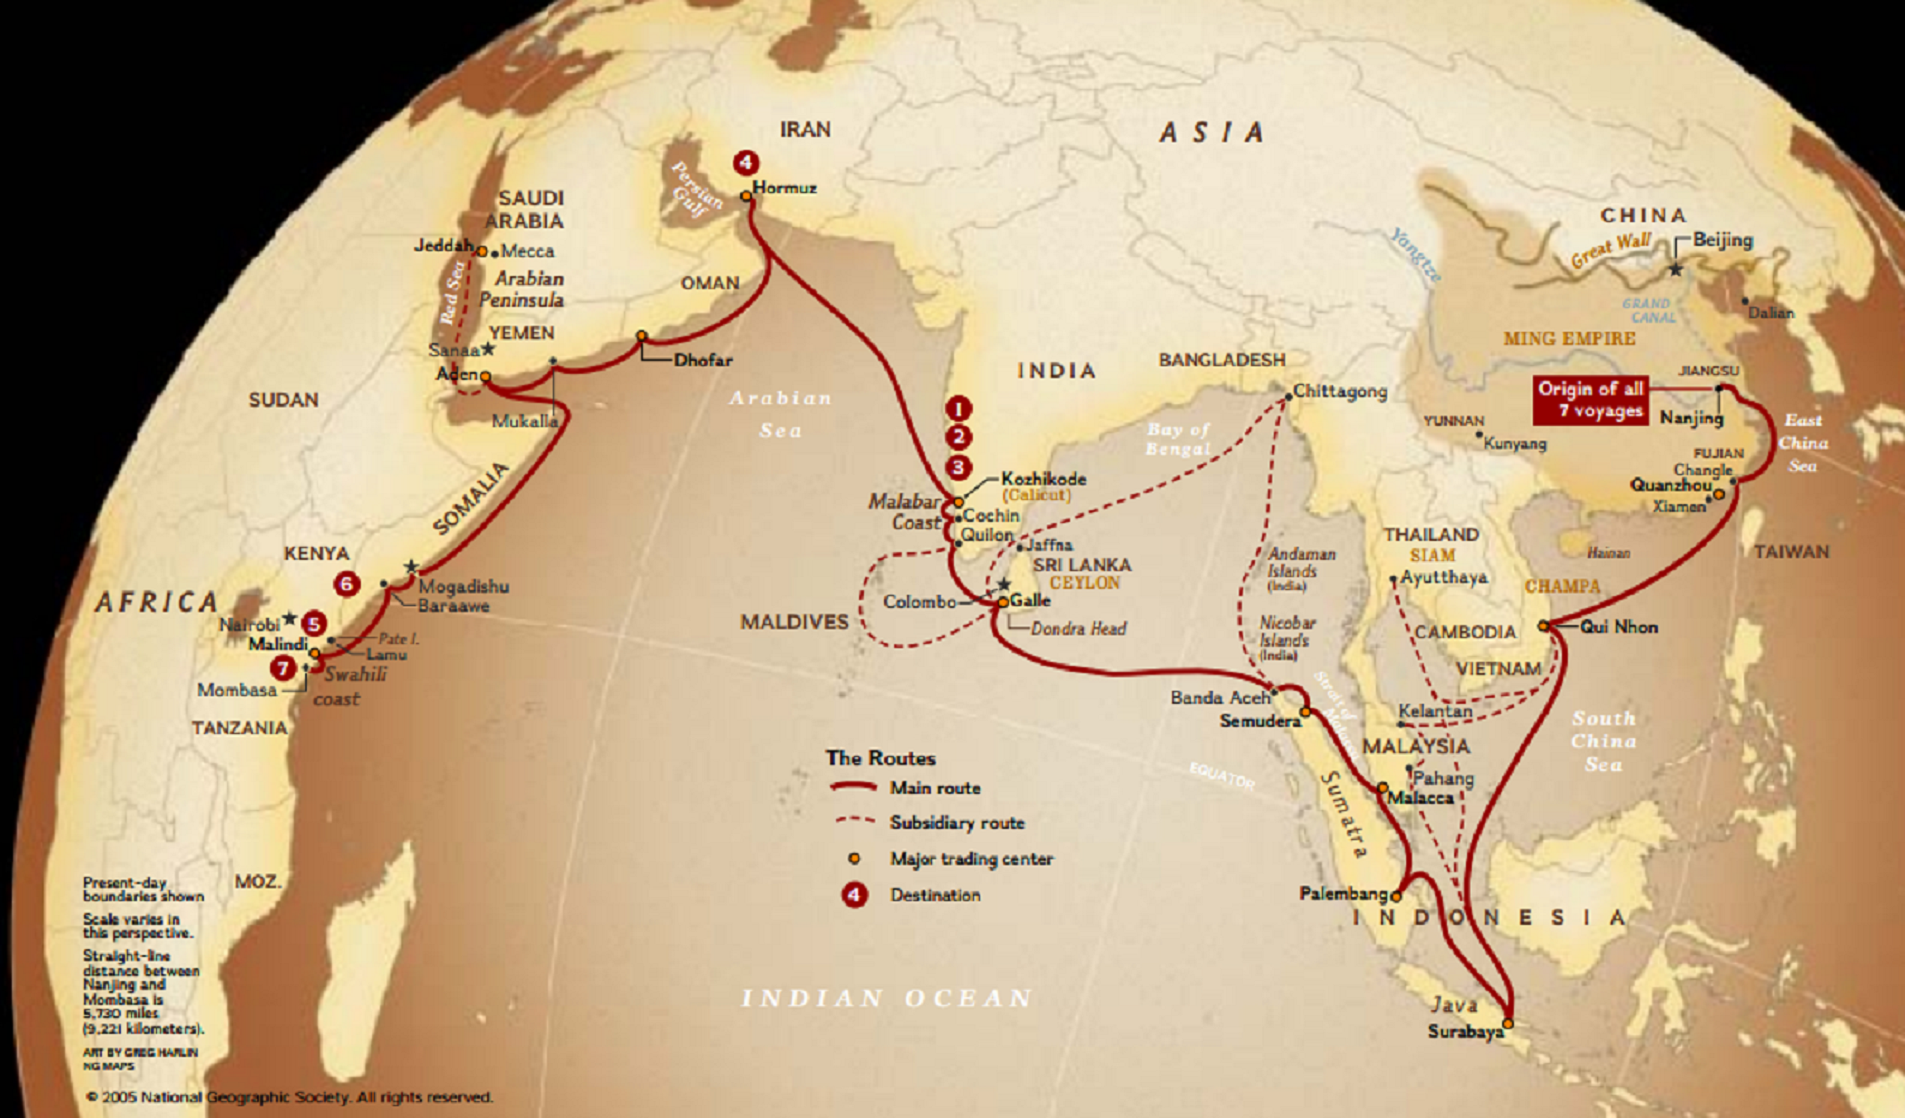 Zheng He Routes On Map on columbus route map, leif ericsson route map, leif ericson route map, marco polo route map, vasco da gama route map, giovanni da verrazzano route map, martin frobisher route map, roald amundsen route map, john cabot route map, ibn battuta route map, silk road route map, desoto route map, eric the red route map, hernan cortes route map, henry hudson route map, leif erikson route map, dias route map, magellan route map, hernando de soto route map, mansa musa route map,